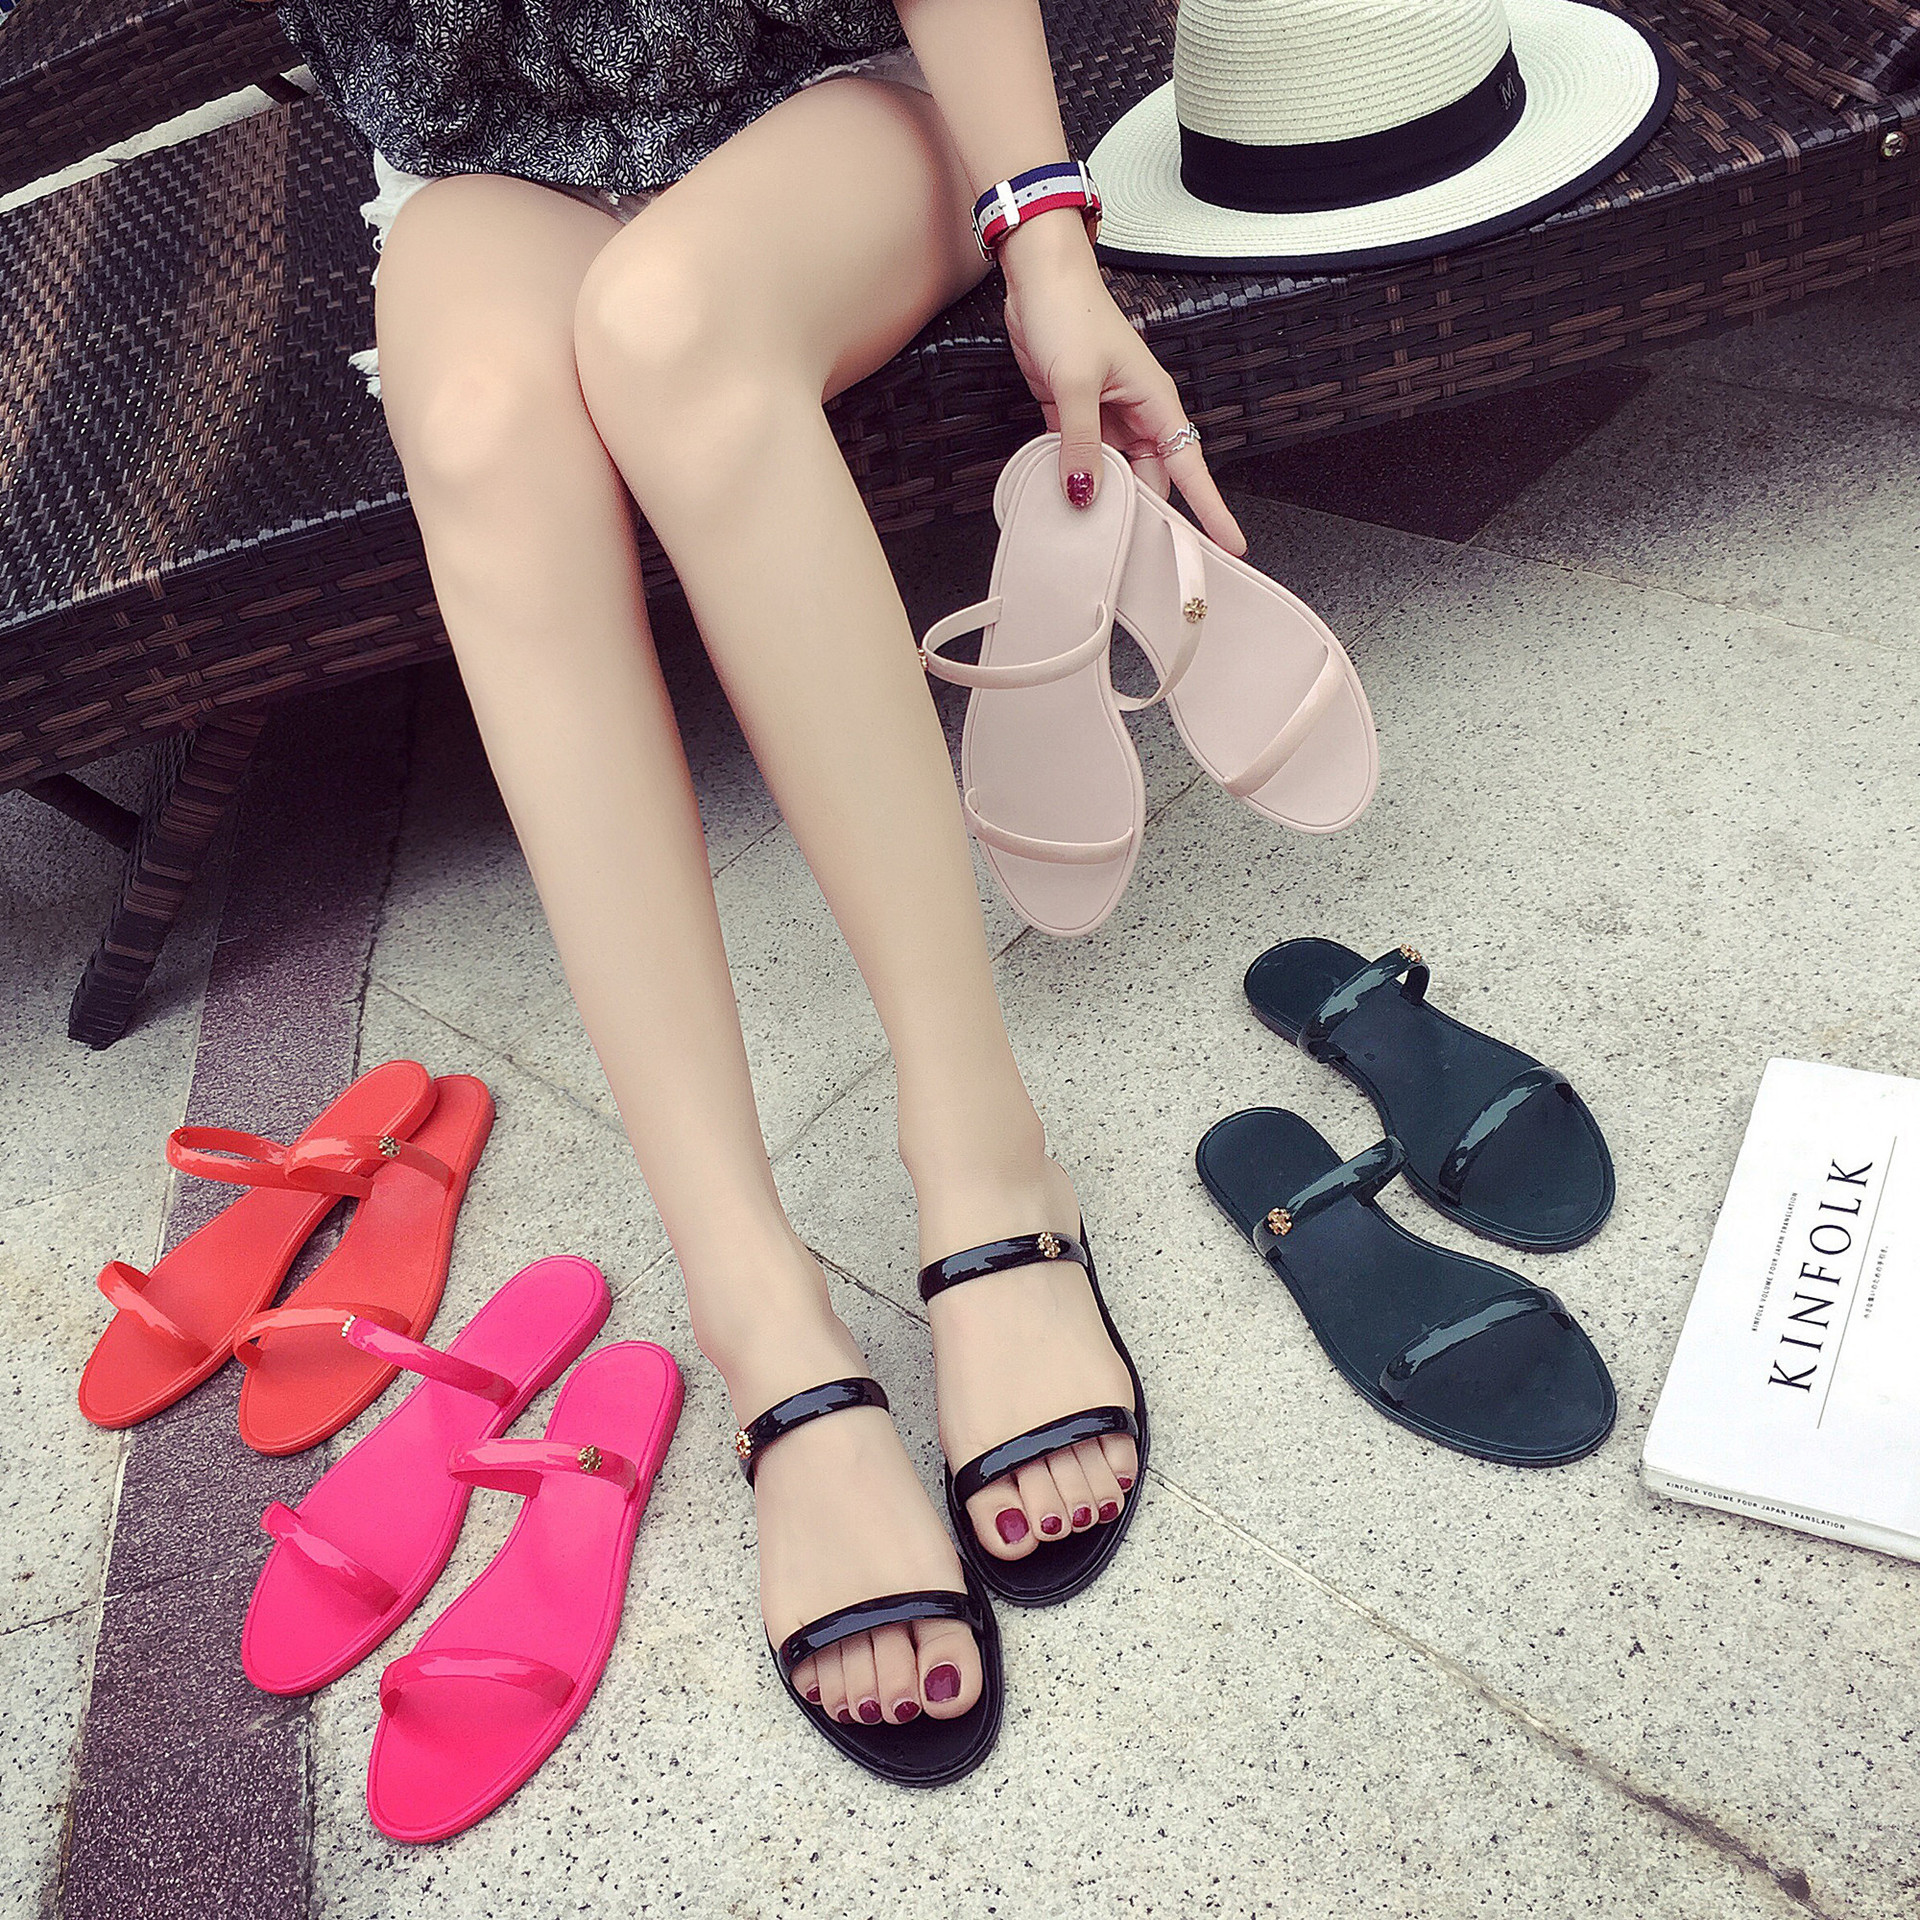 2018 Summer Casual Style Jelly Shoes Women Sandals Flats Rivet Slippers Fashion Holiday Beach Woman Shoes Flip Flops Size 36-40